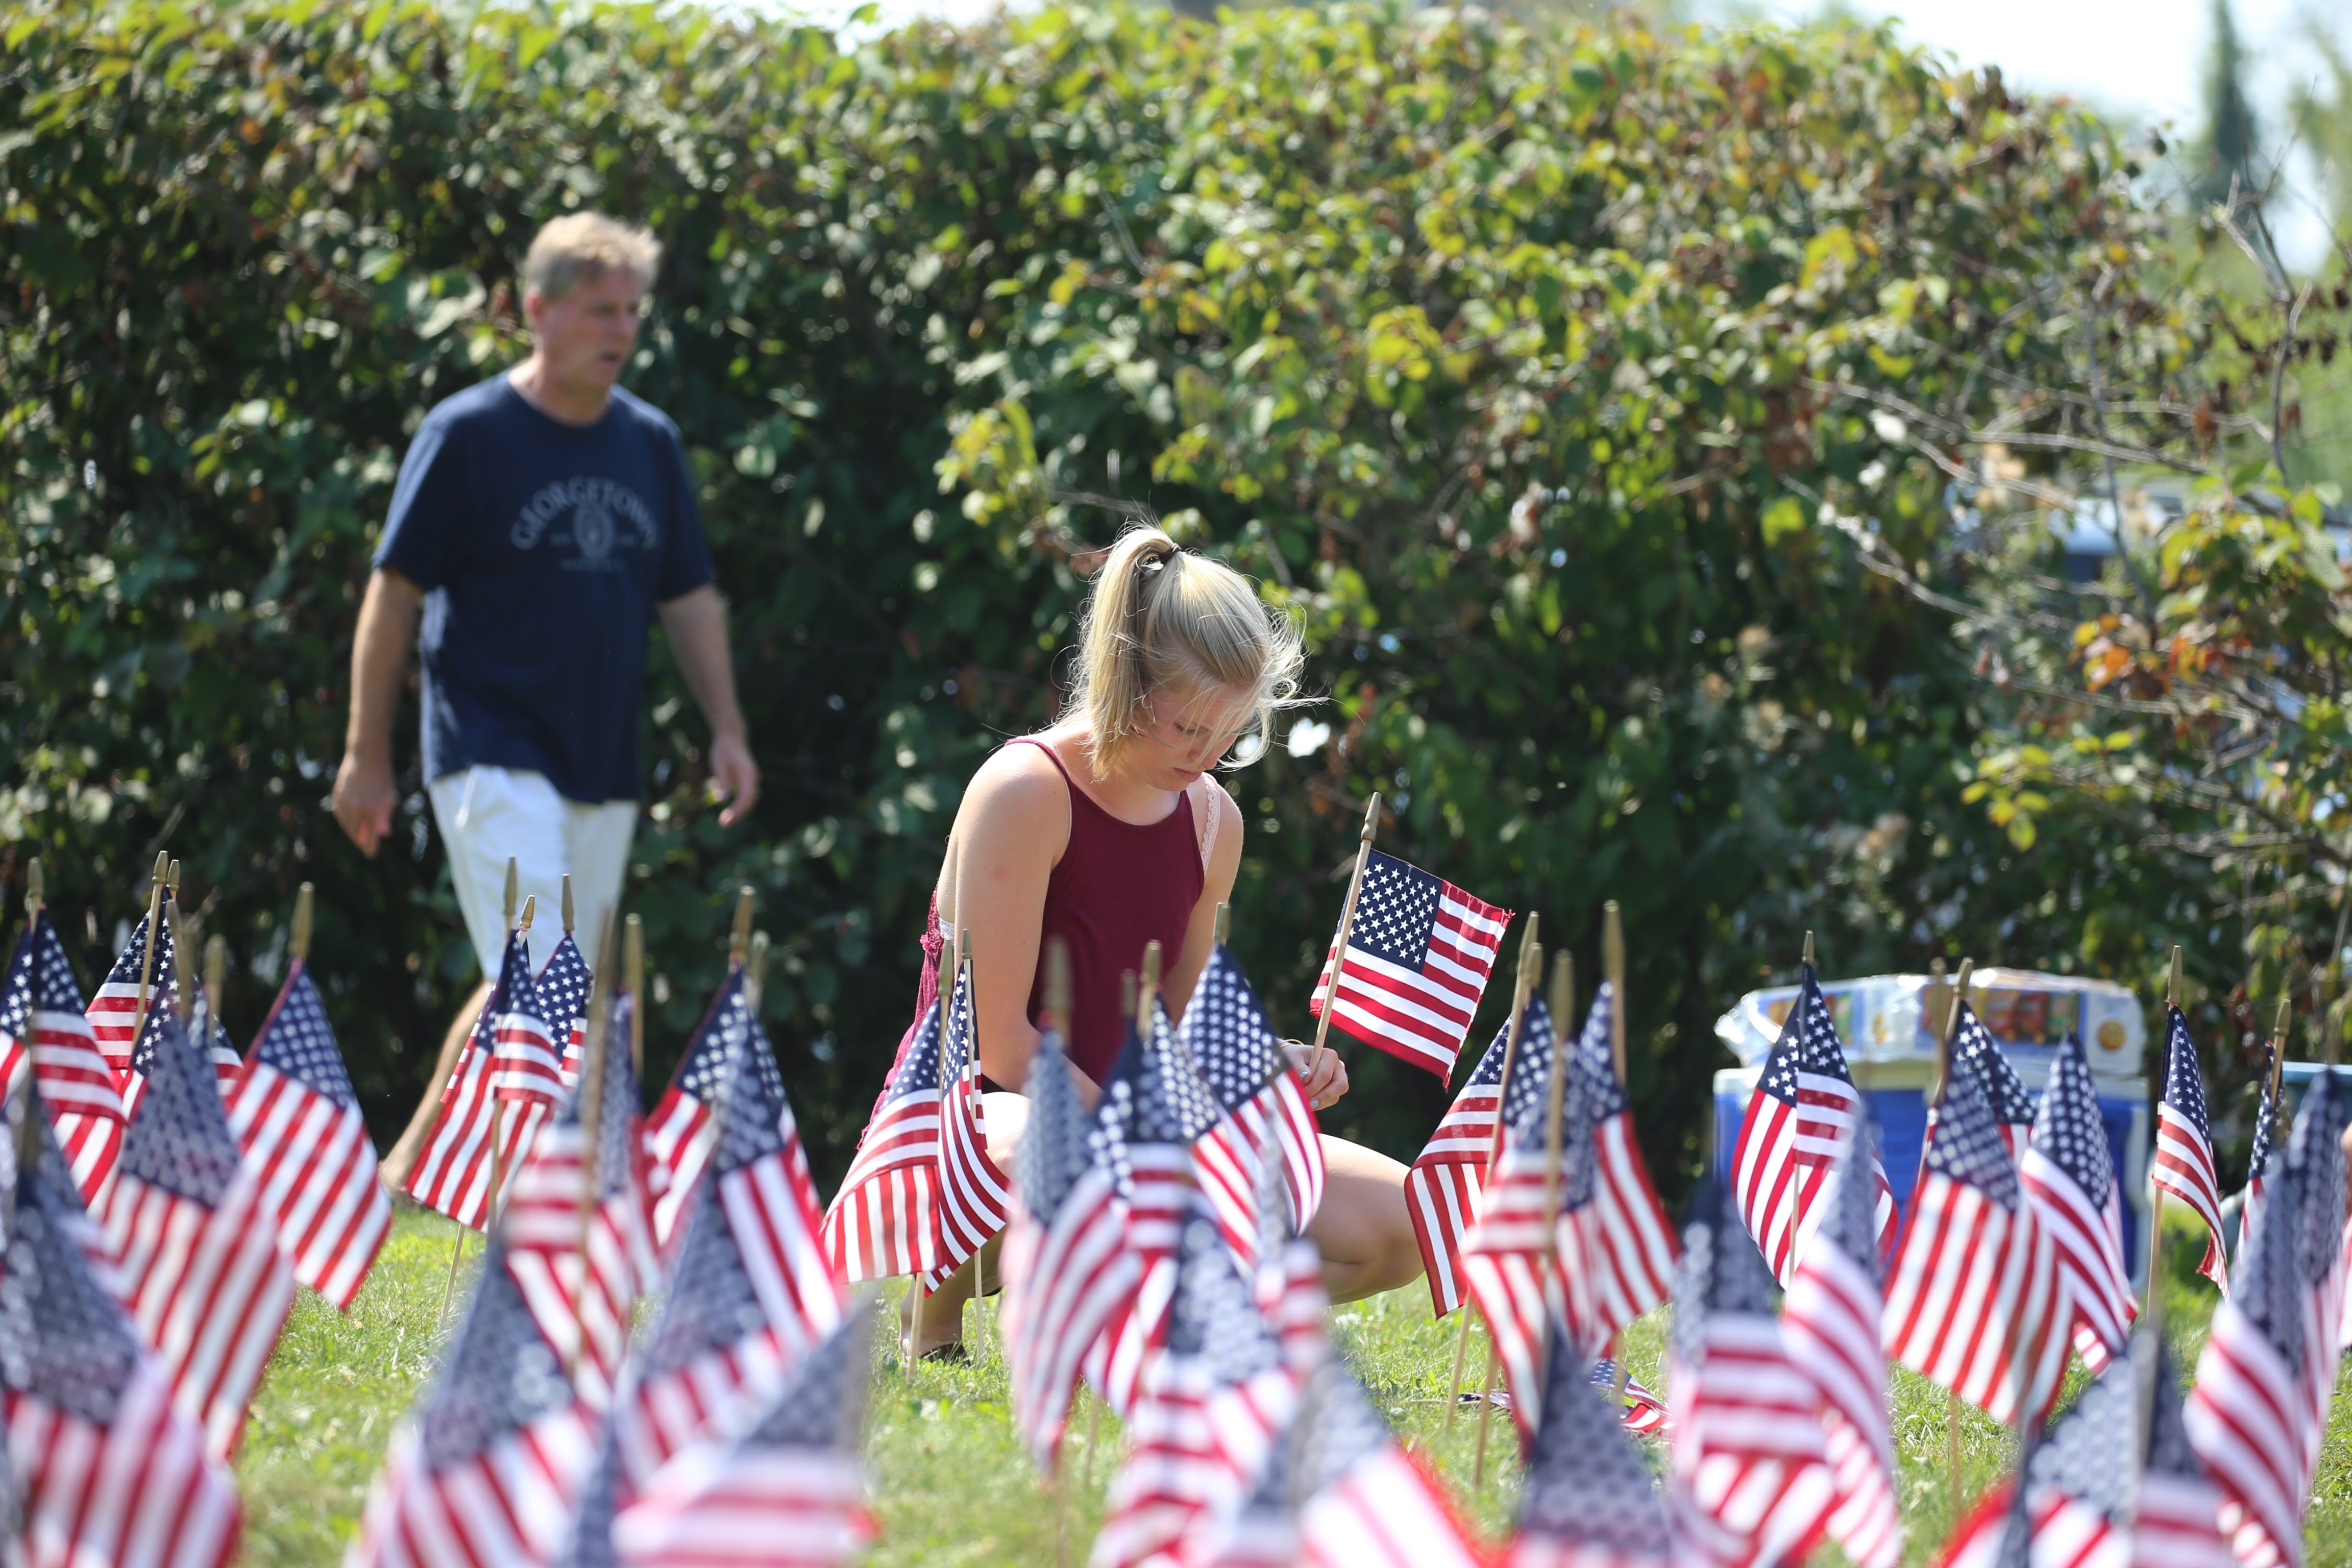 Kathryn Yoder of Amherst, a volunteer with Western New York Families of September 11th, last Septebmer helped place 3,000 miniature flags on the lawn of the Buffalo headquarters of the Red Cross on Delaware Avenue to honor the victims of the Sept. 11 attacks. (John Hickey/Buffalo News file photo)